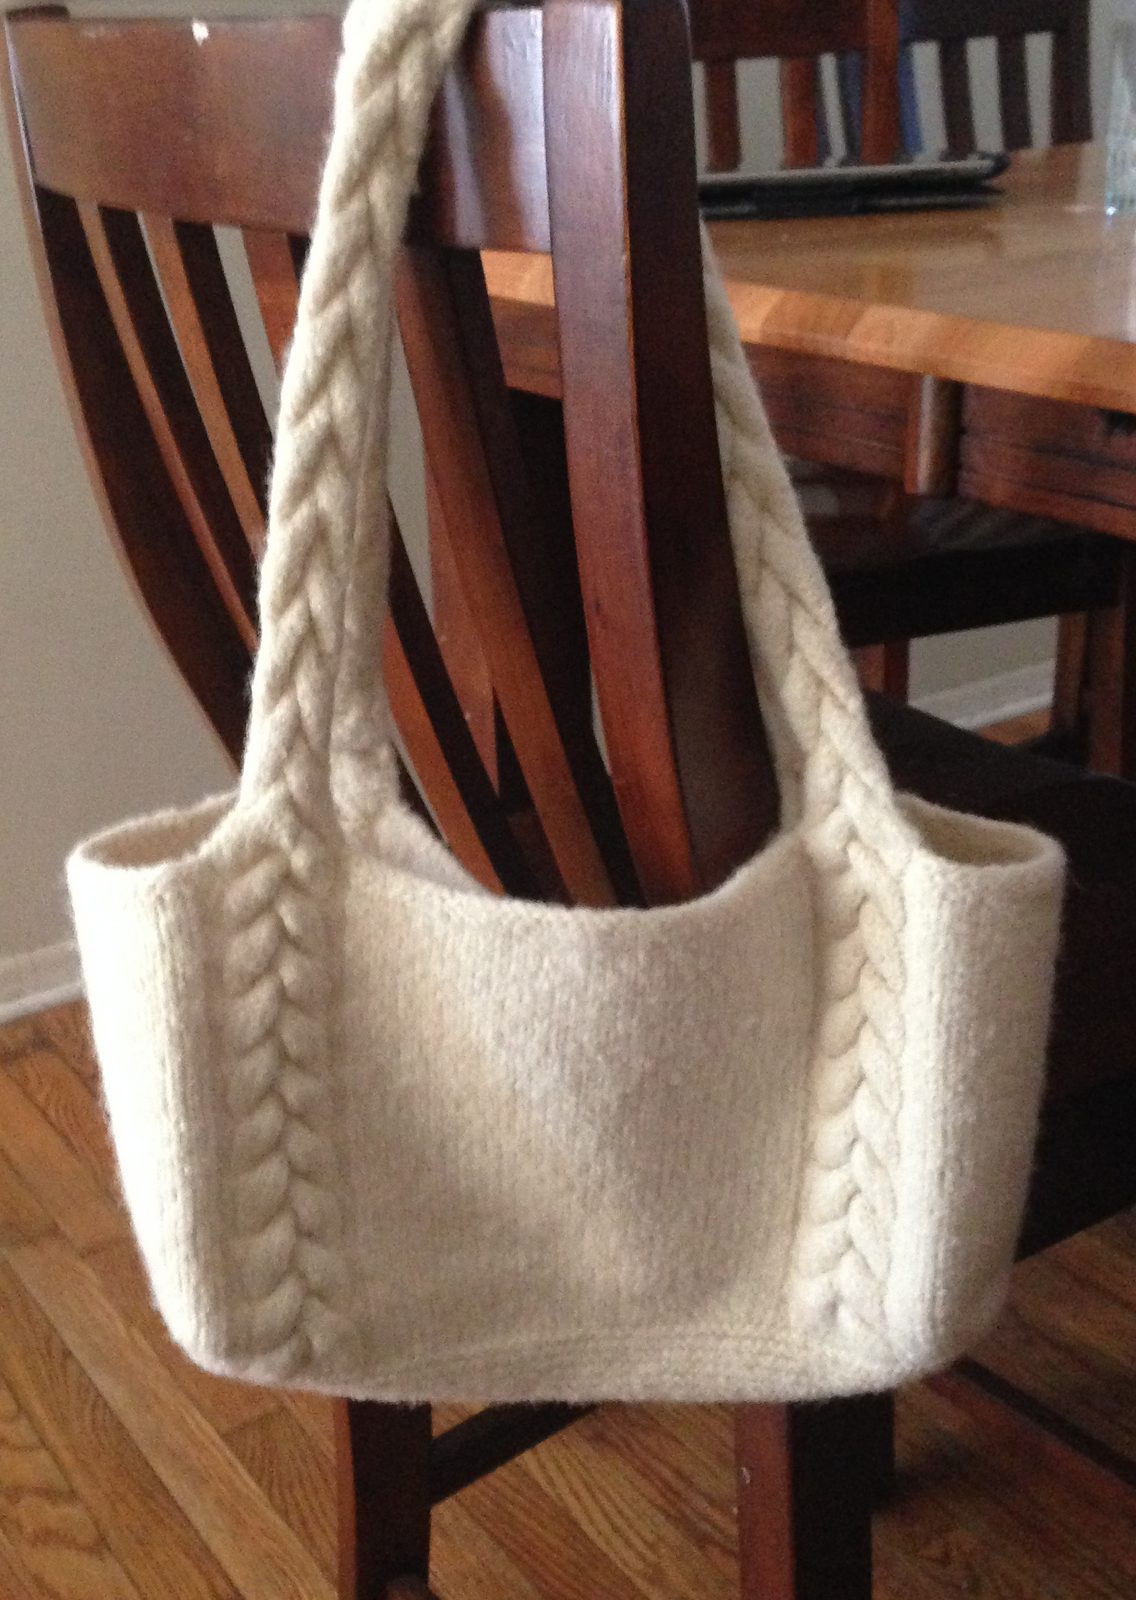 Lovely Purse Knitting Patterns Knitted Purse Of Amazing 41 Pics Knitted Purse